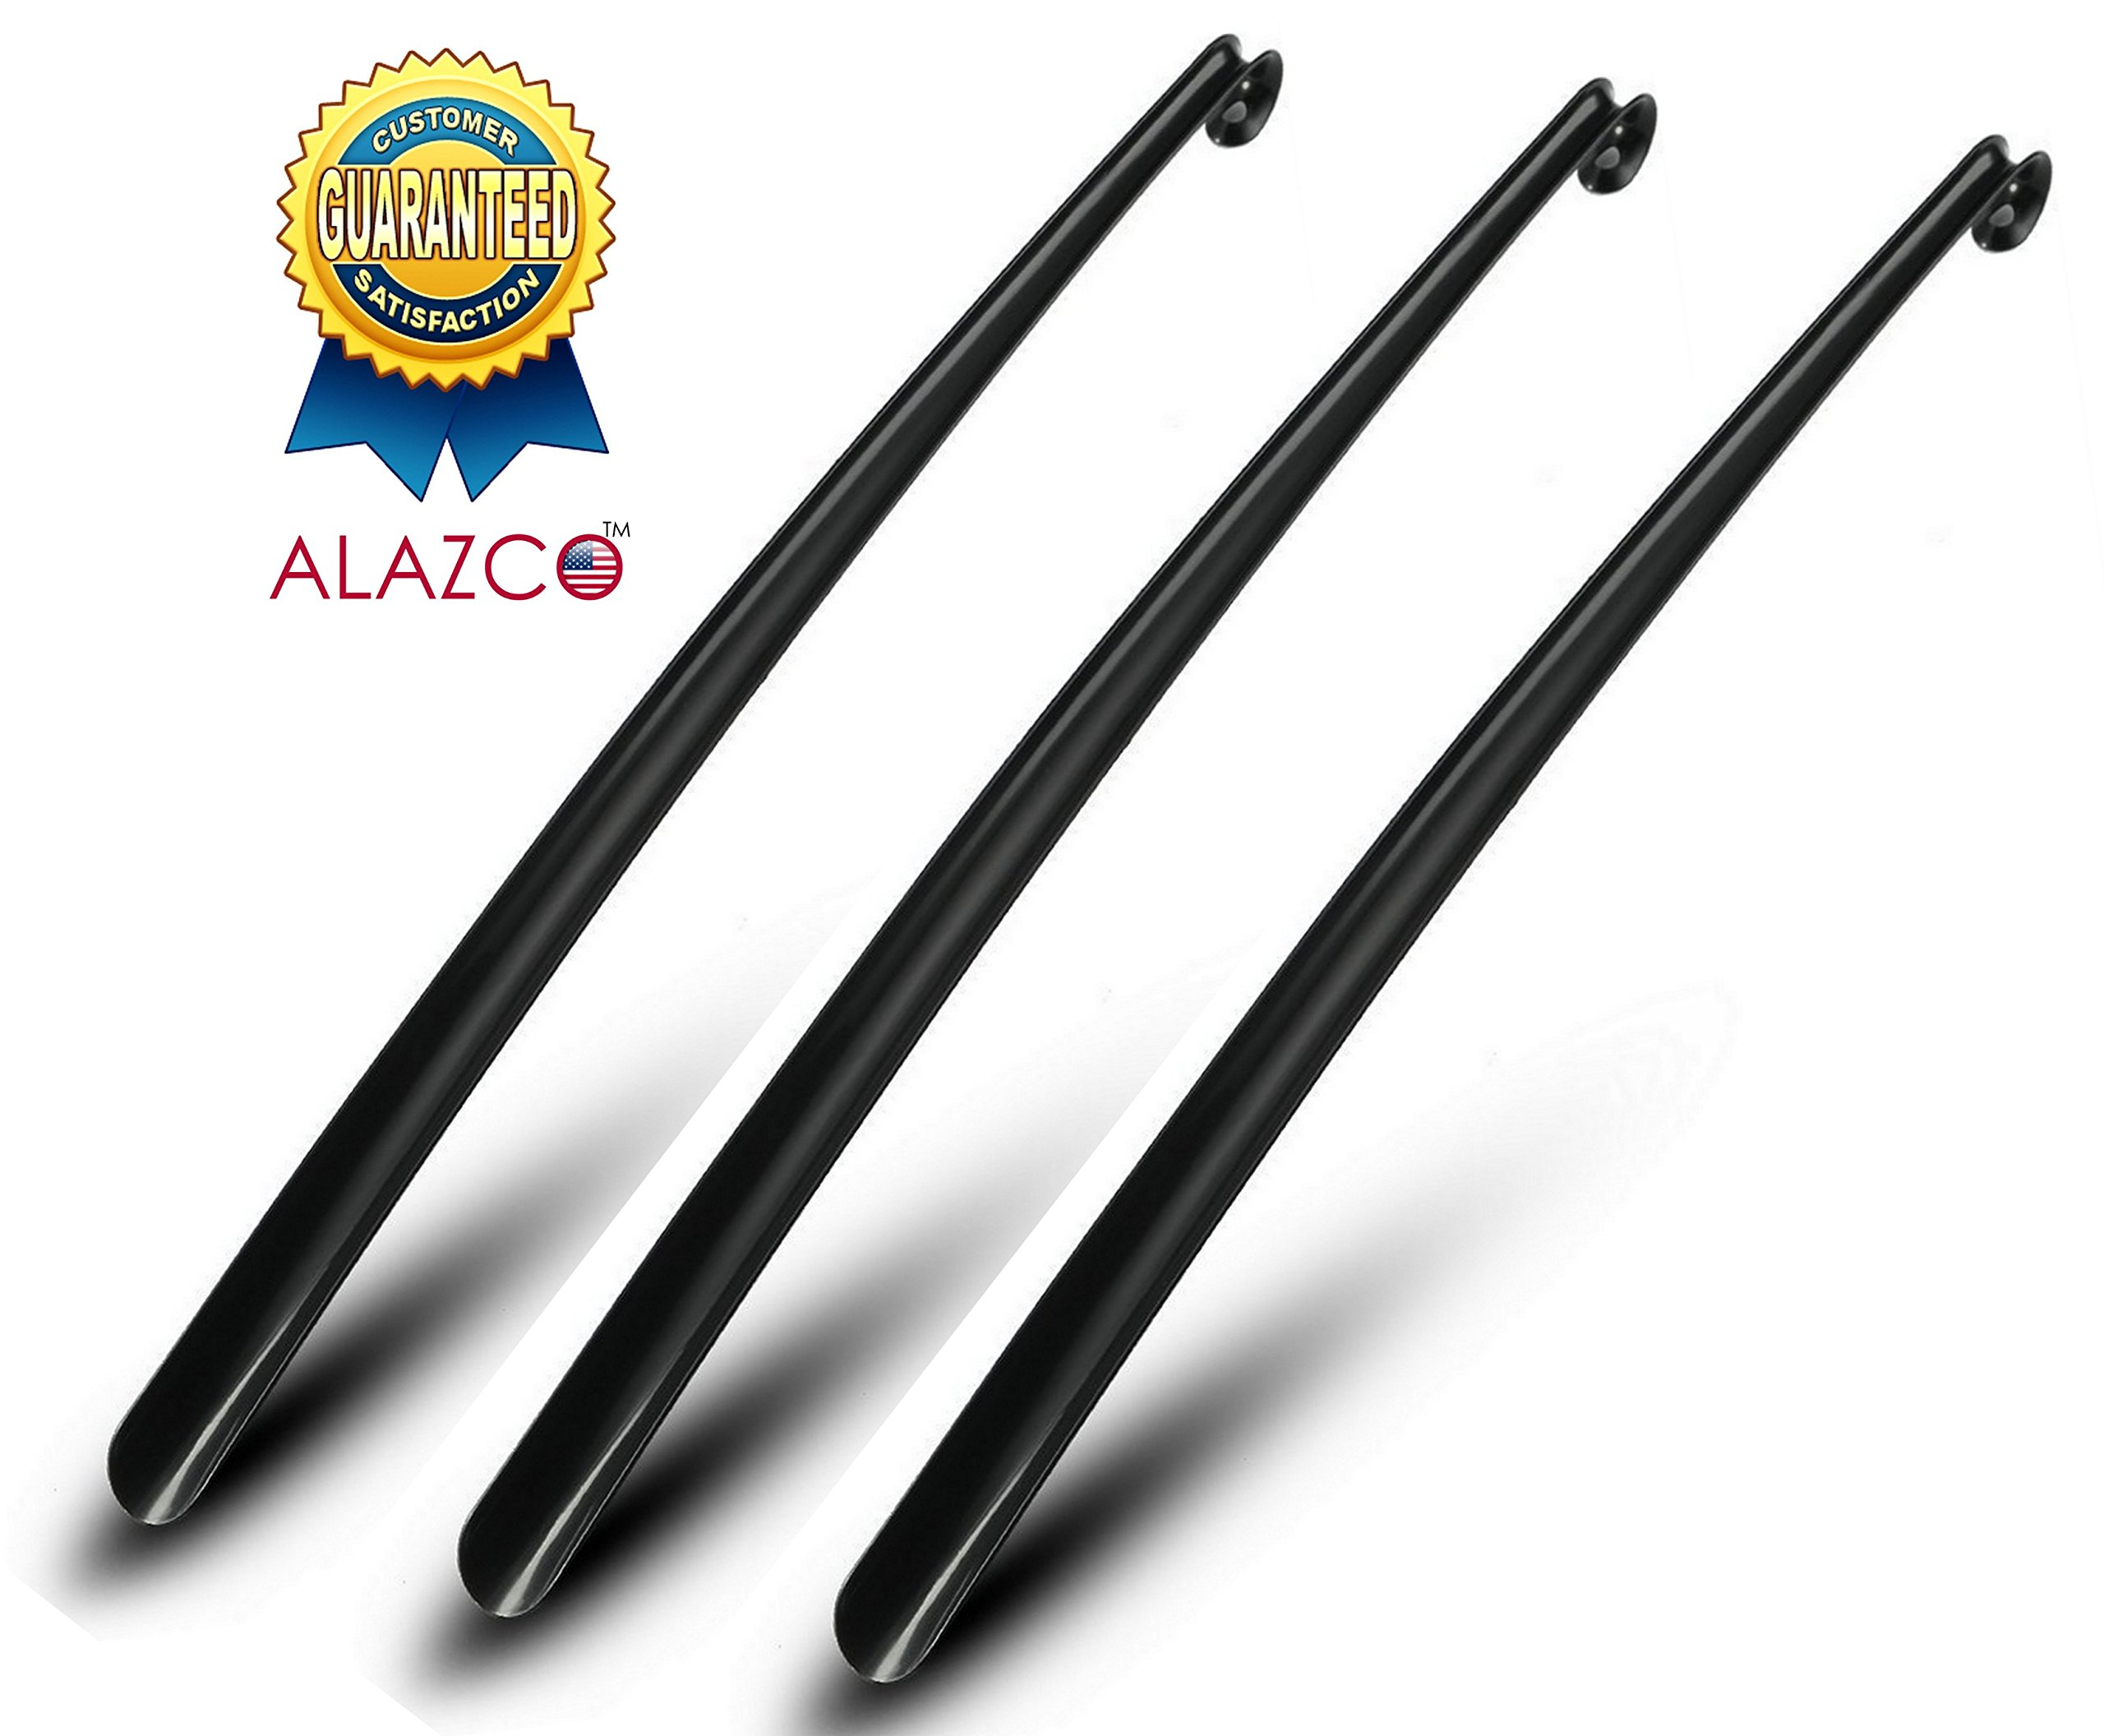 3 Premium Quality Alazco Shoe Horns Easy-Grip 30'' Extra Long Handle Shoehorns Arm Extender Back Saver - Black